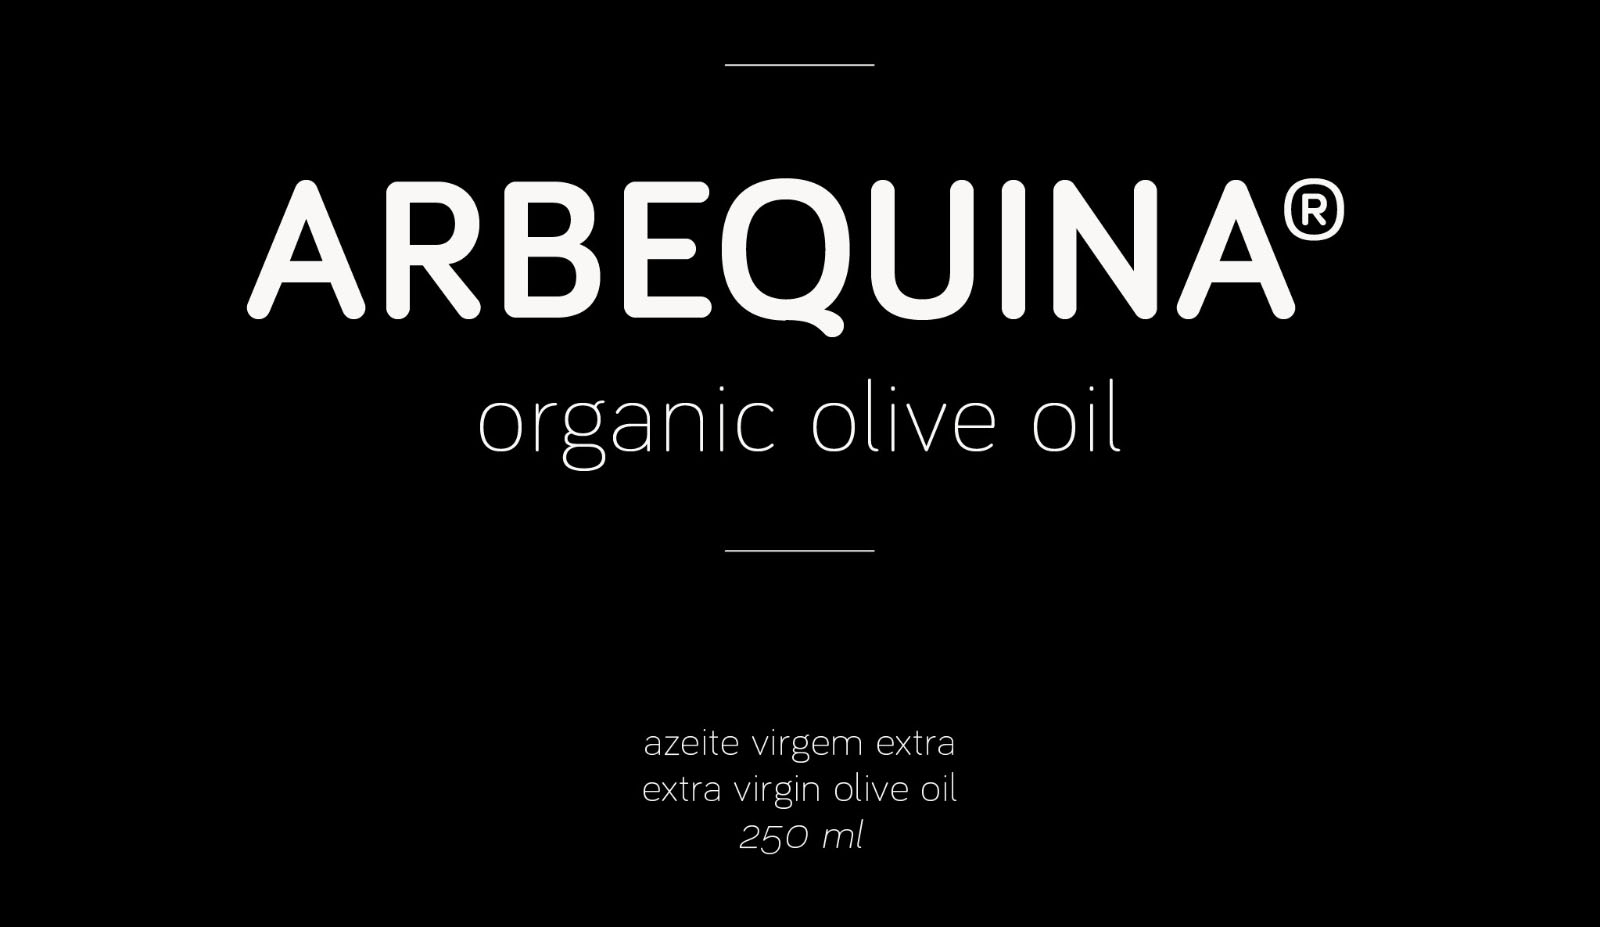 Bariol condensed rounded font